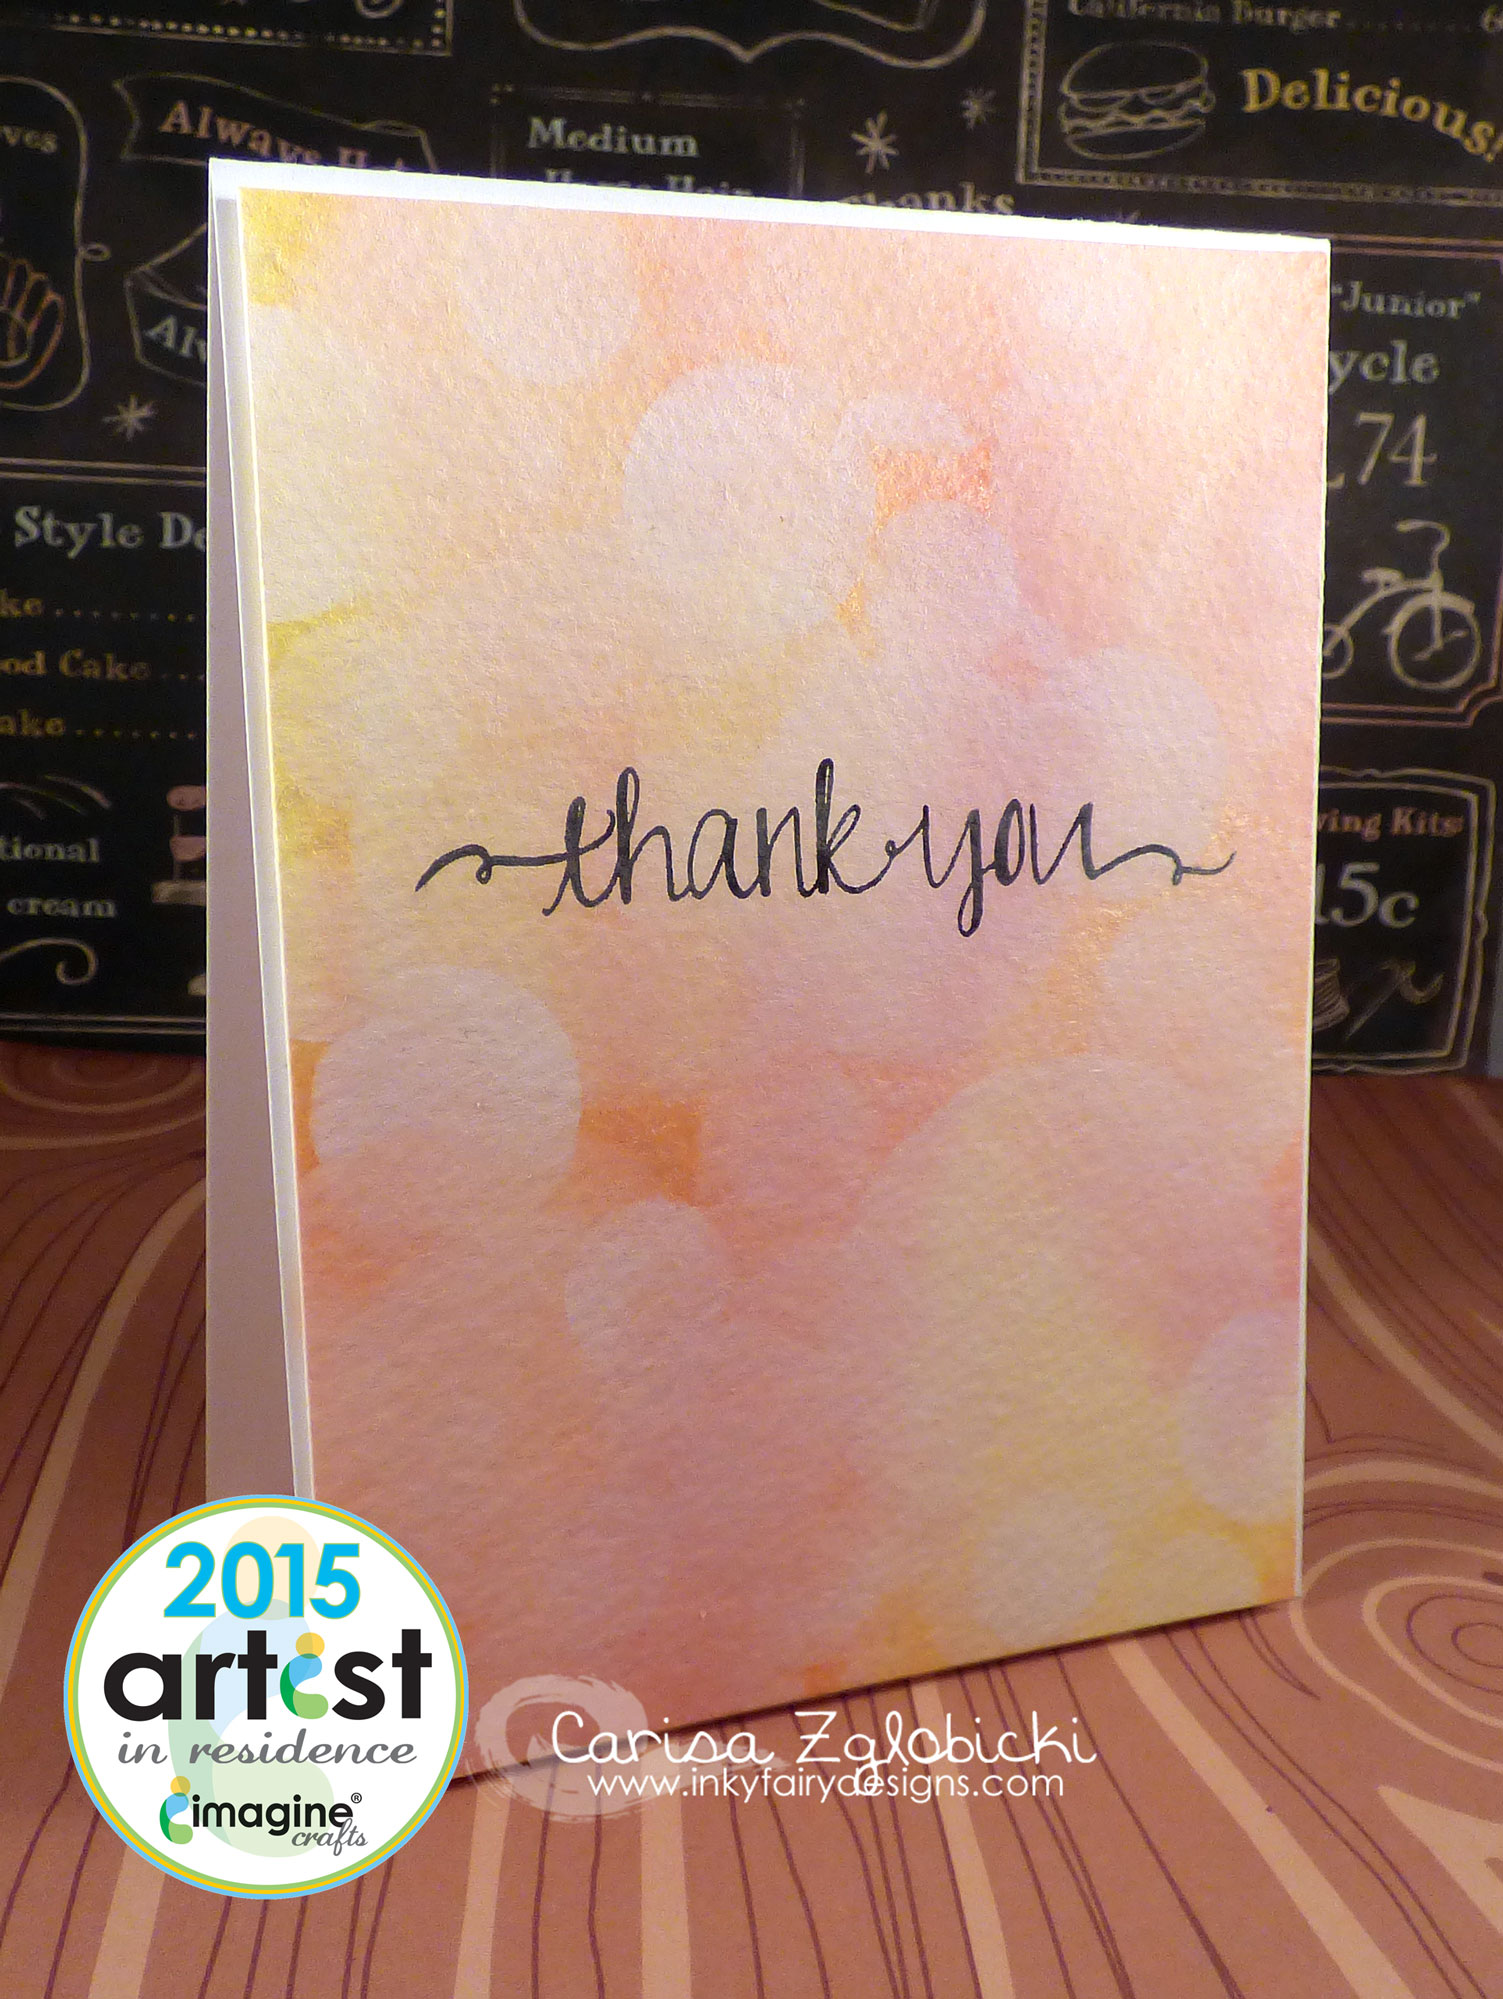 Handmade thank you card featuring a bokeh effect made with inks in yellows, oranges and coral colors.